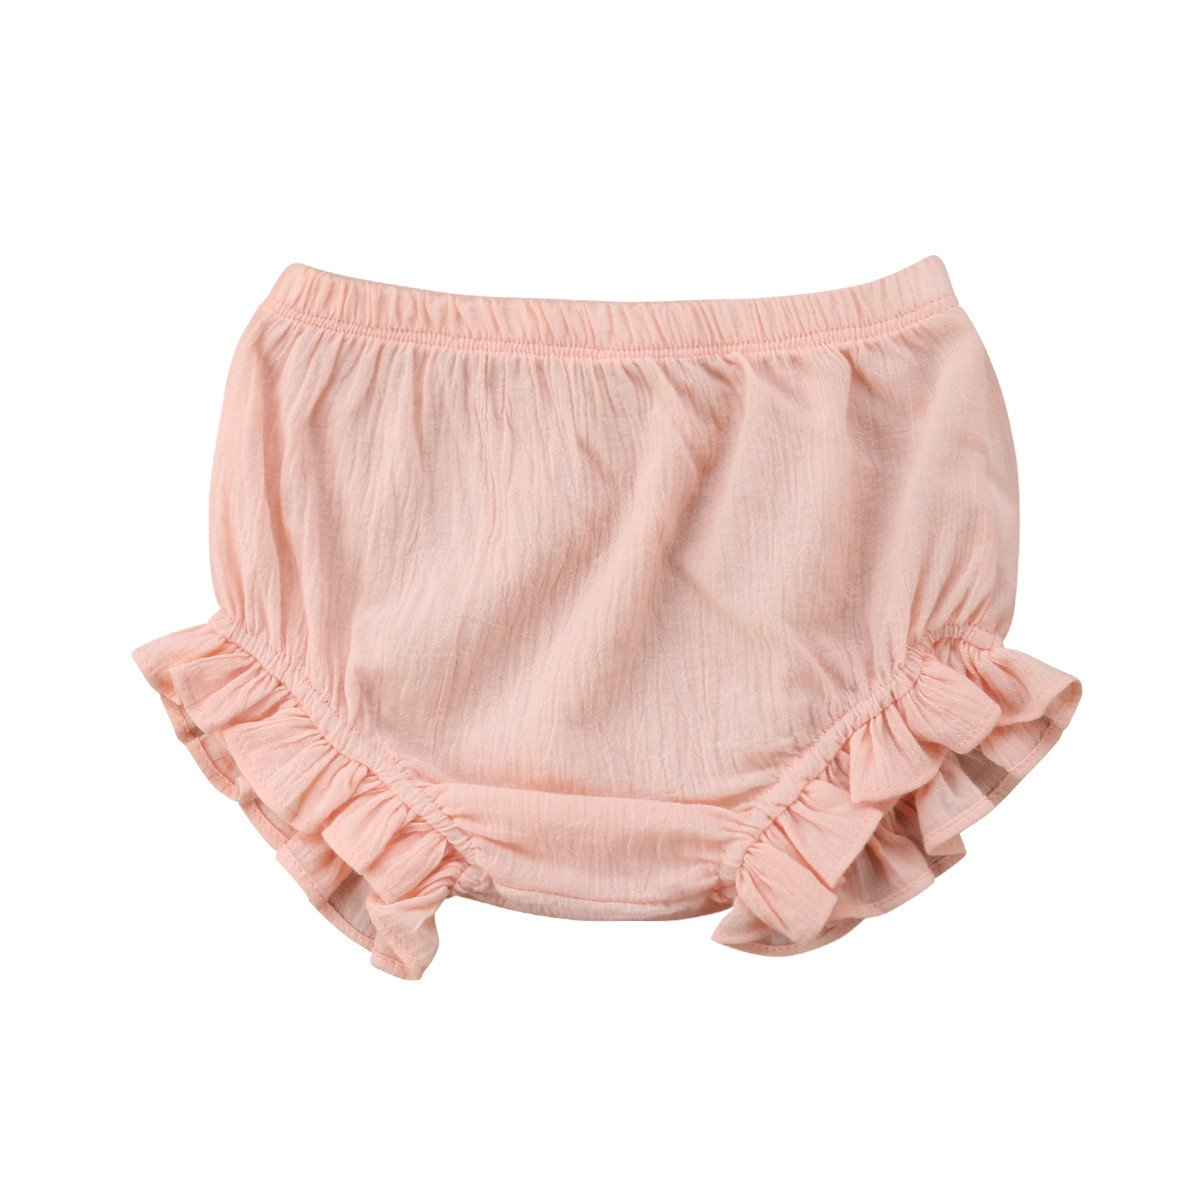 Mornbaby Baby Girl's Bloomers Cotton Ruffle Panty Diaper Covers Underwear Shorts Toddler Kids Girls (Pink, 2-3 Years) by Mornbaby (Image #1)